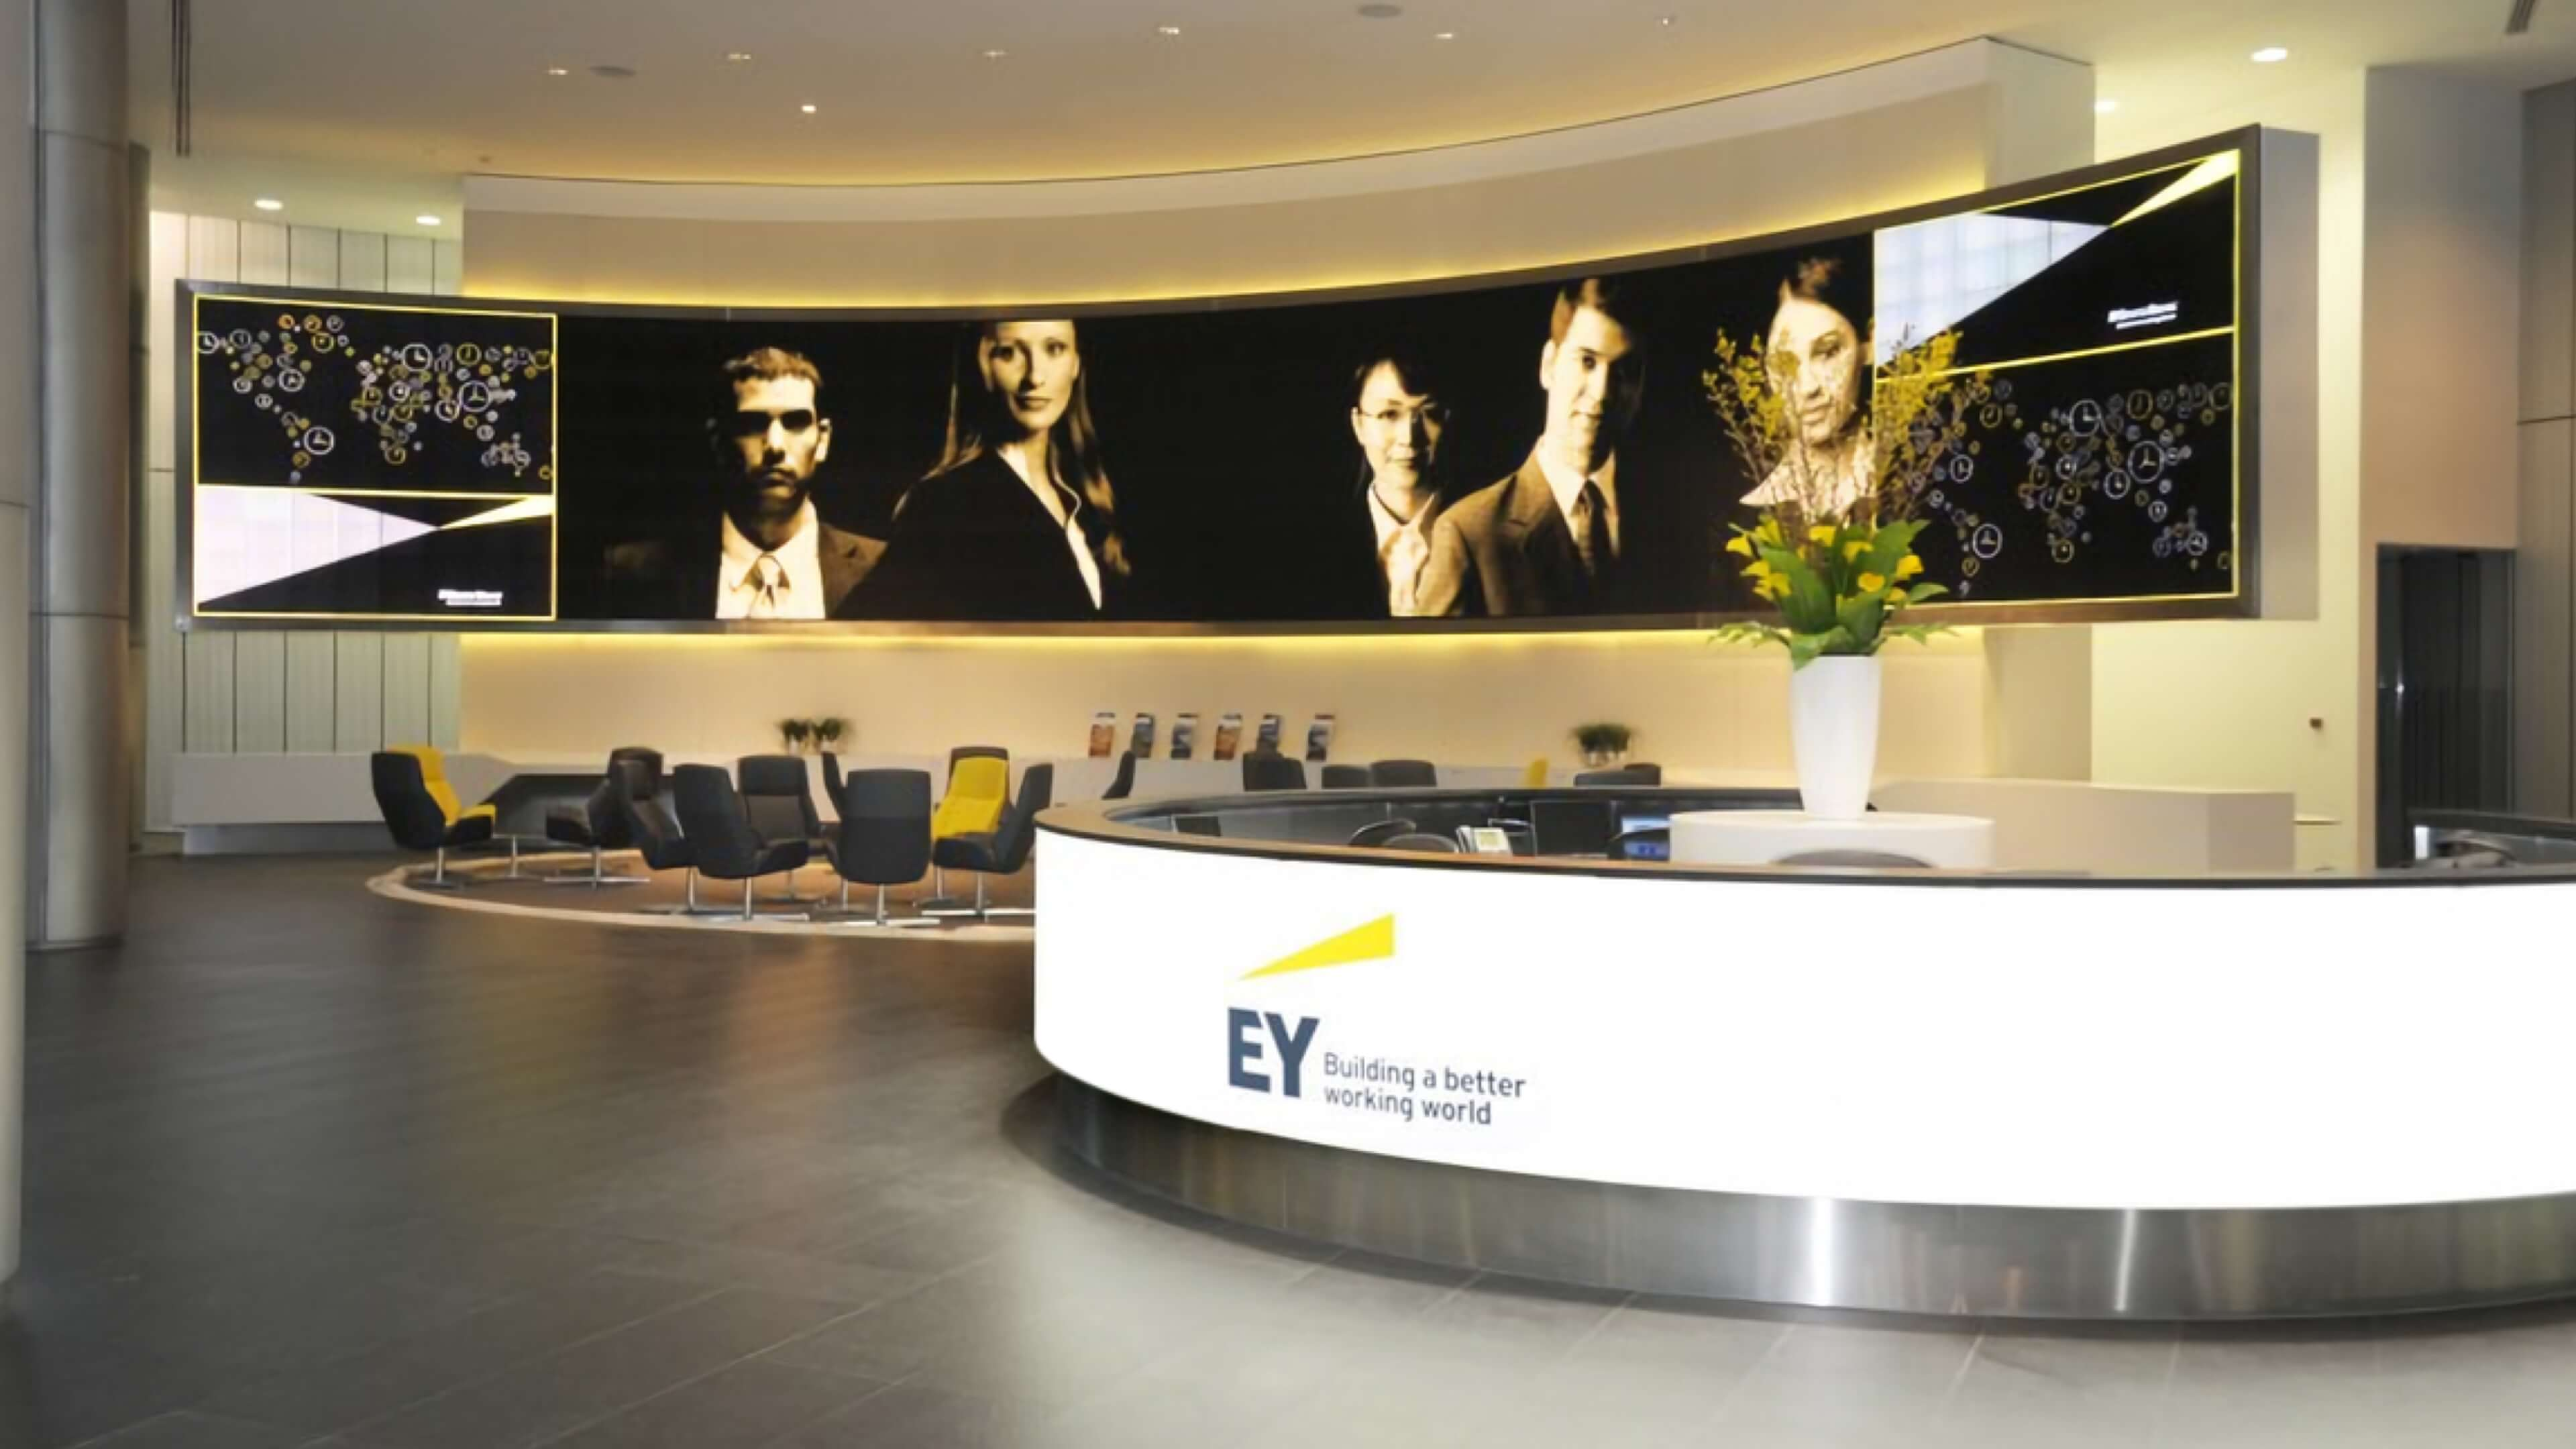 Philip_Mawer_Ernst_Young_01